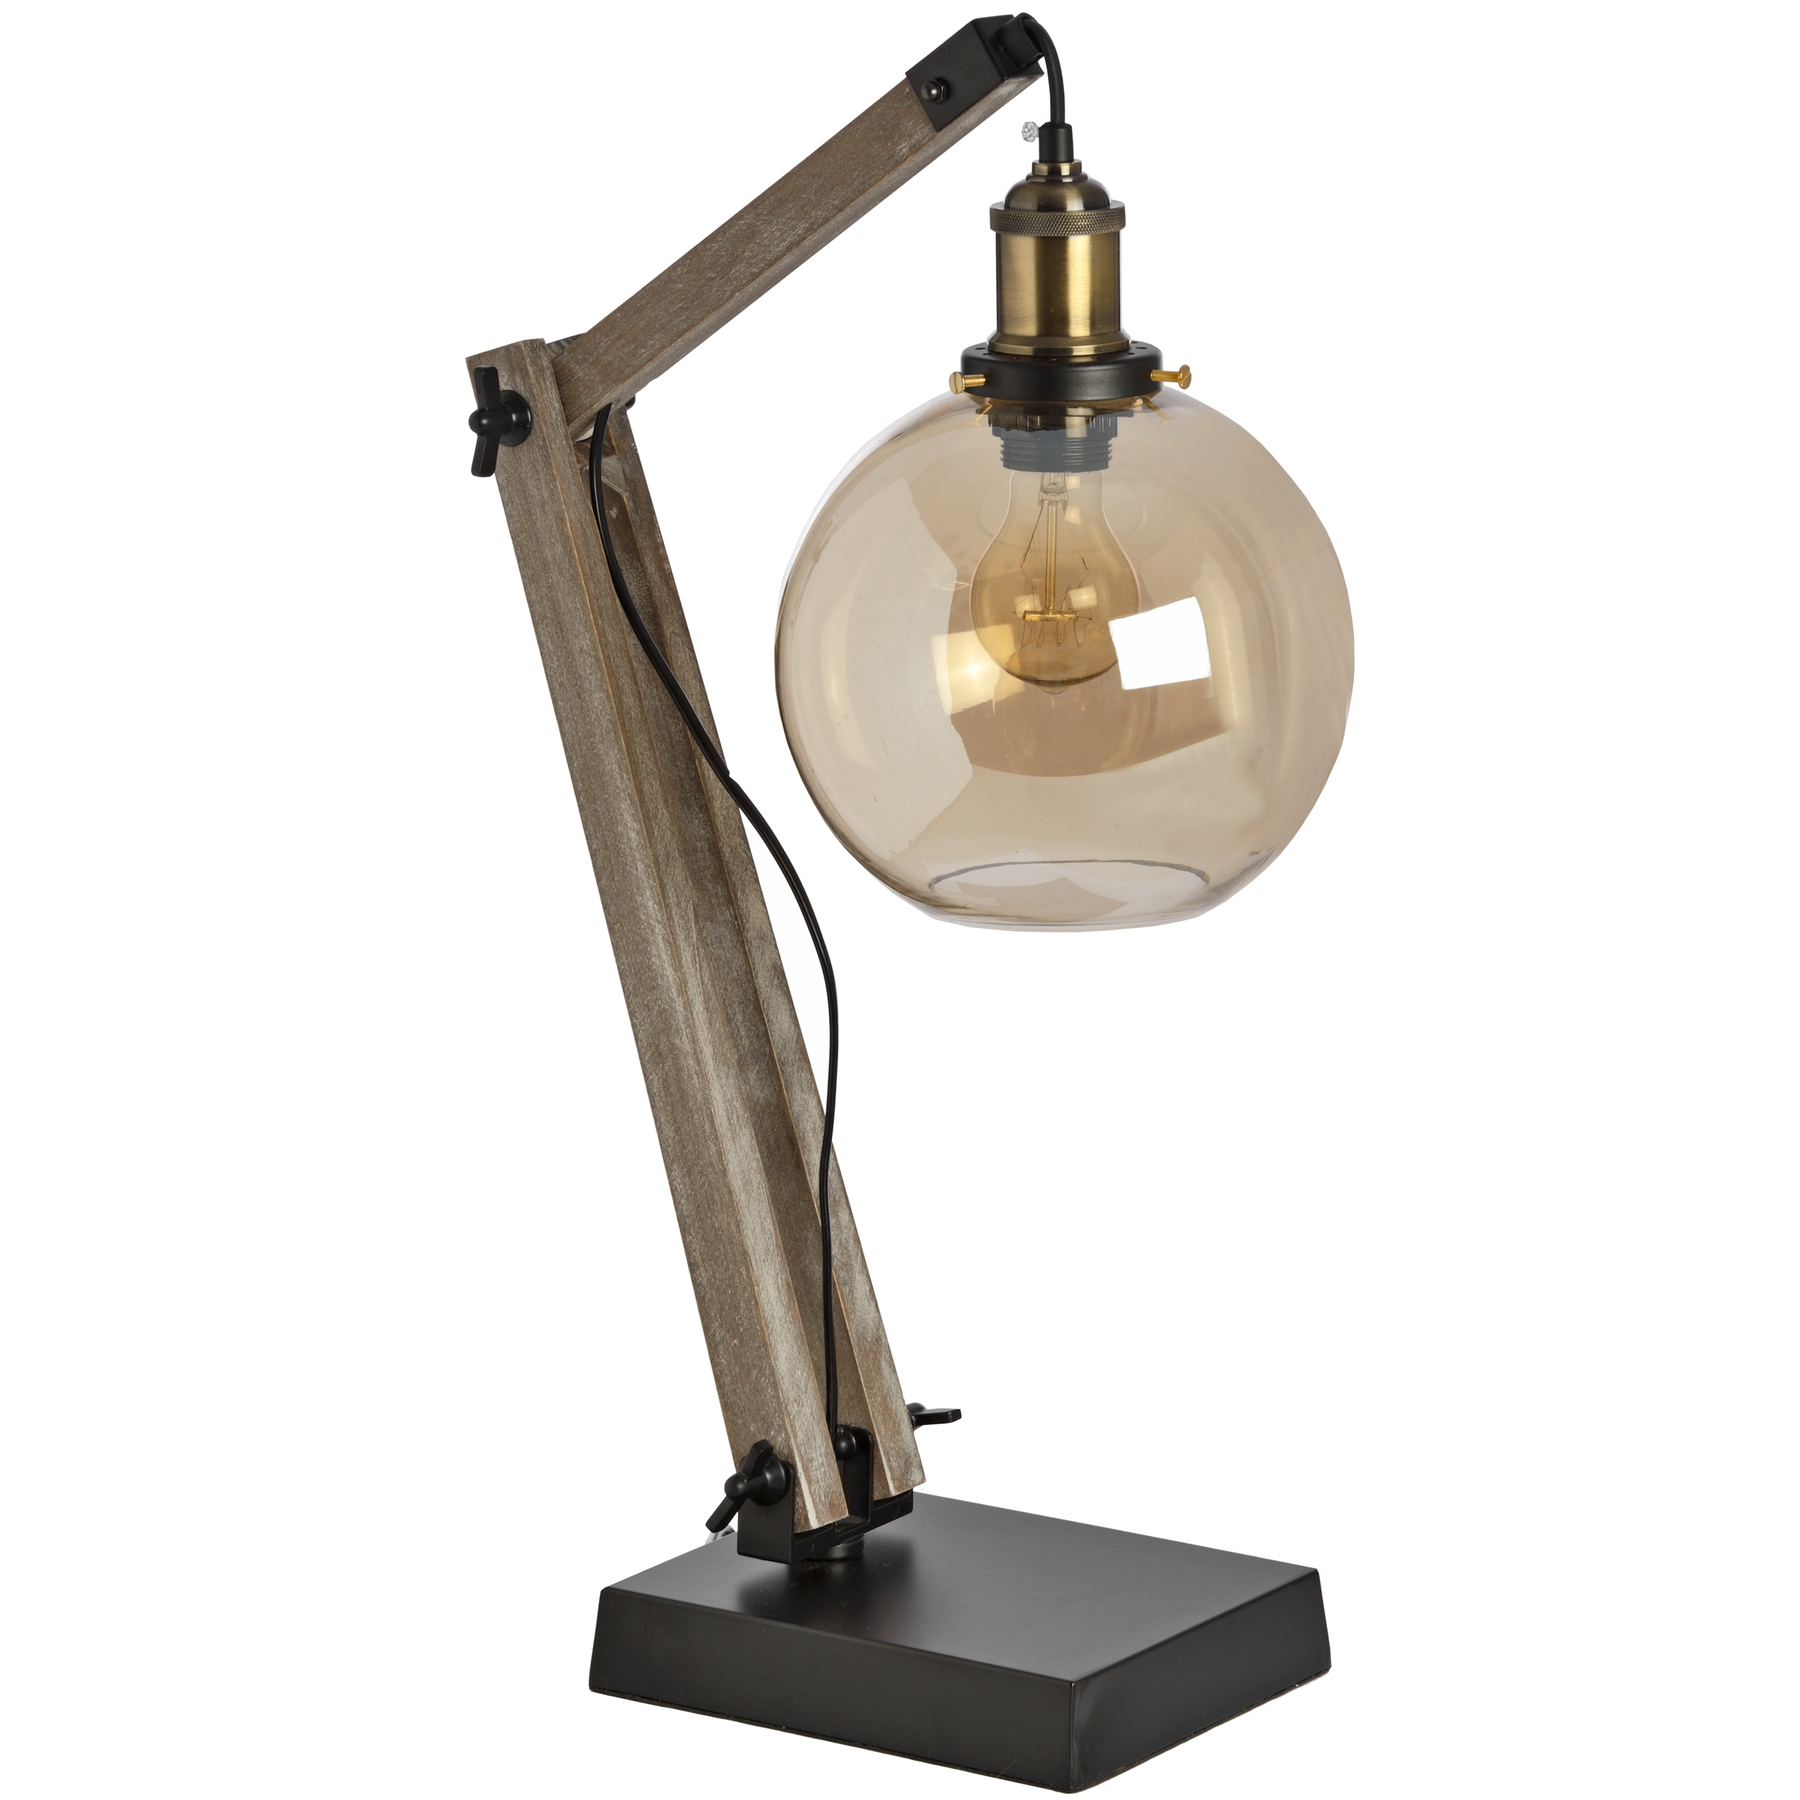 Retro Industrial Table Lamp